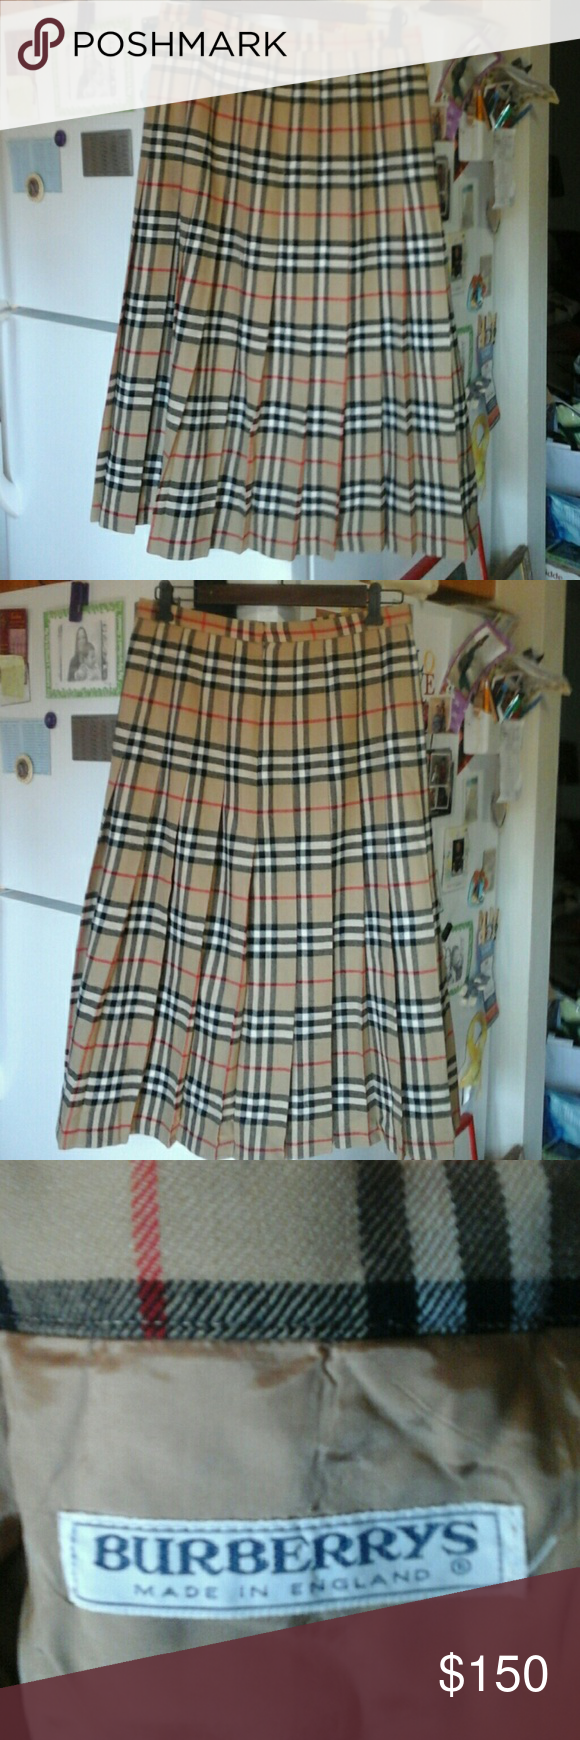 Vintage BURBERRYS  London Nova Check Tartan 100% Wool.  Lining  100% Viscose. In great condition. # E 92424/4. Back zipper Burberry Skirts Midi